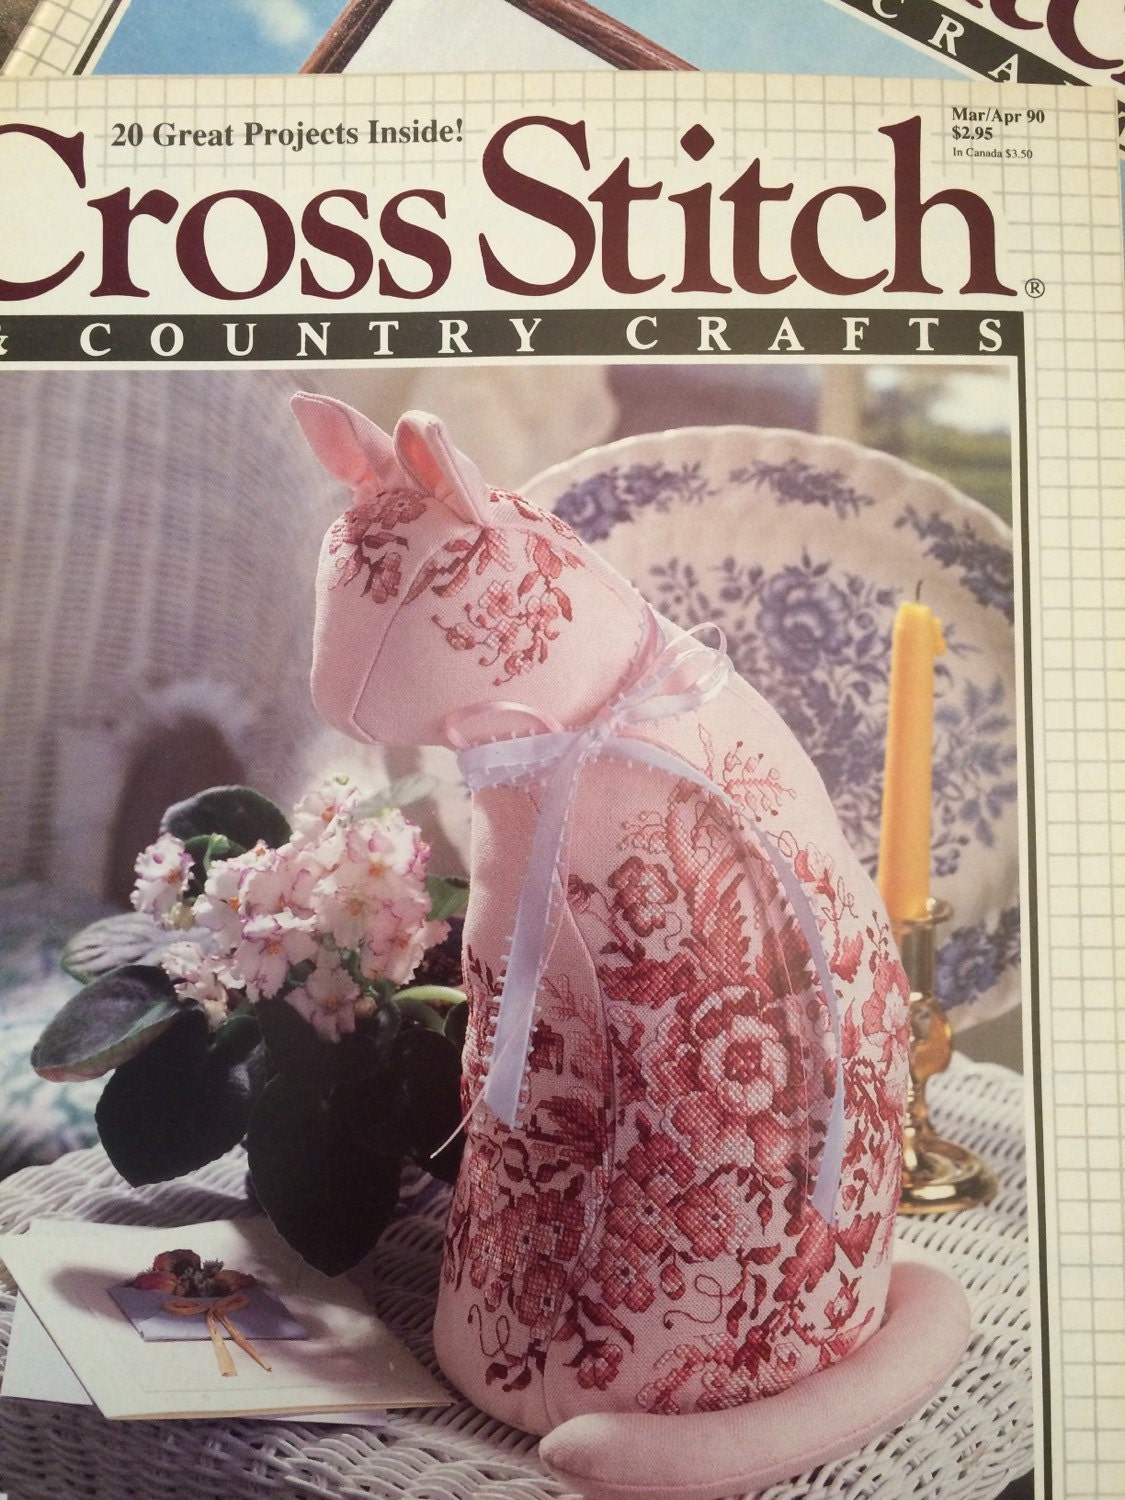 Cross stitch country crafts magazine back issues - Cross Stitch And Country Crafts Magazines 1990 Complete Year 6 Issues Sold By Lagunalane